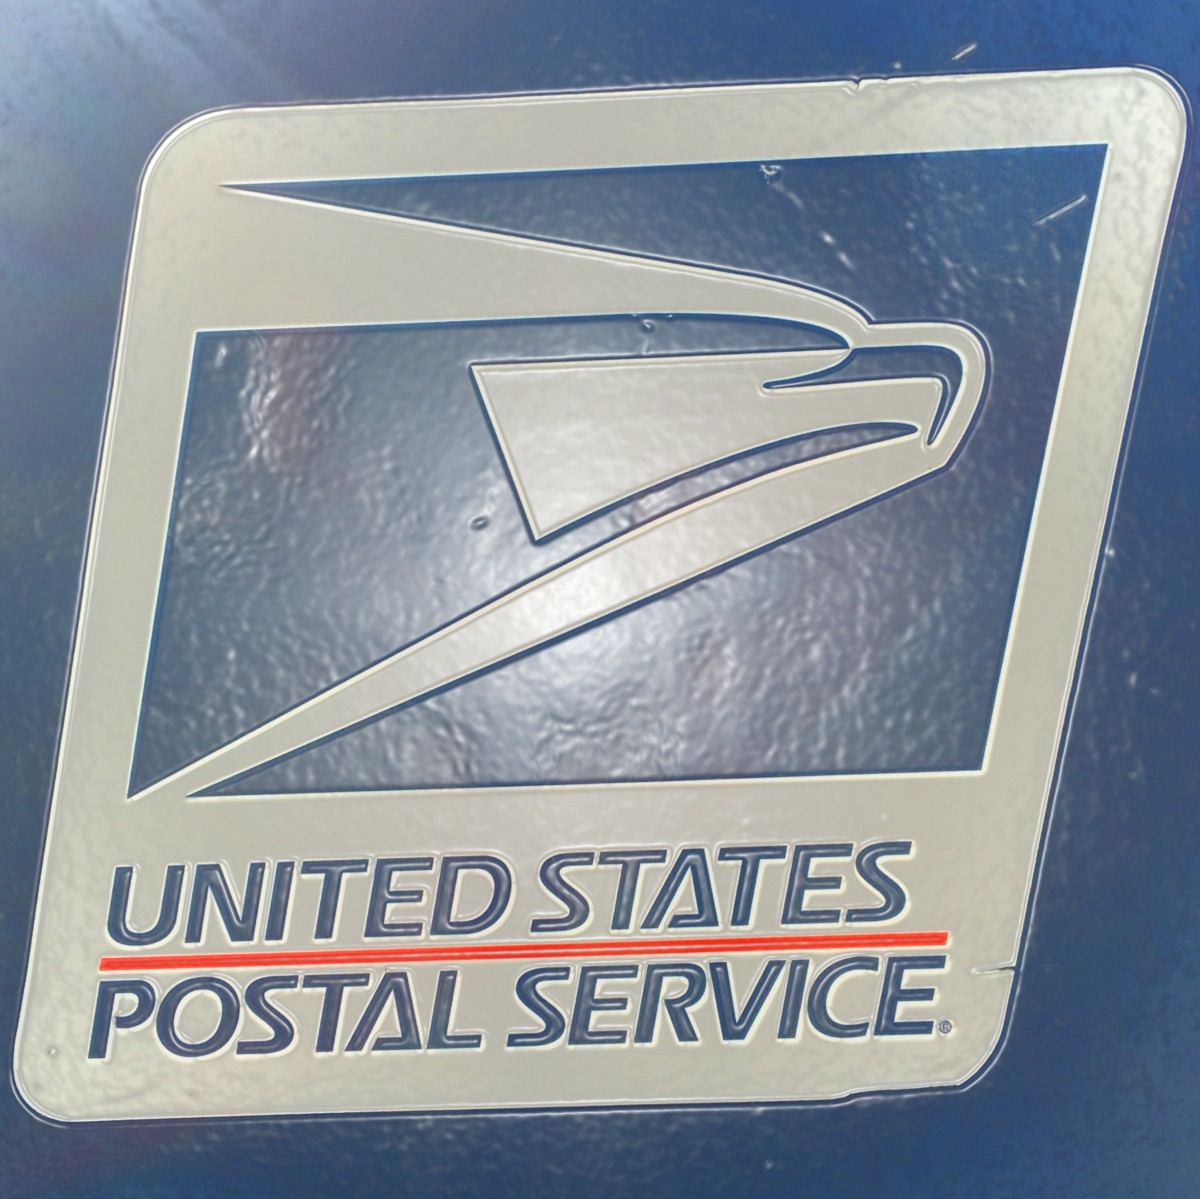 The blue mailbox piece of string medium the usps logo as of the agencys founding in 1971 photo by graham bosch buycottarizona